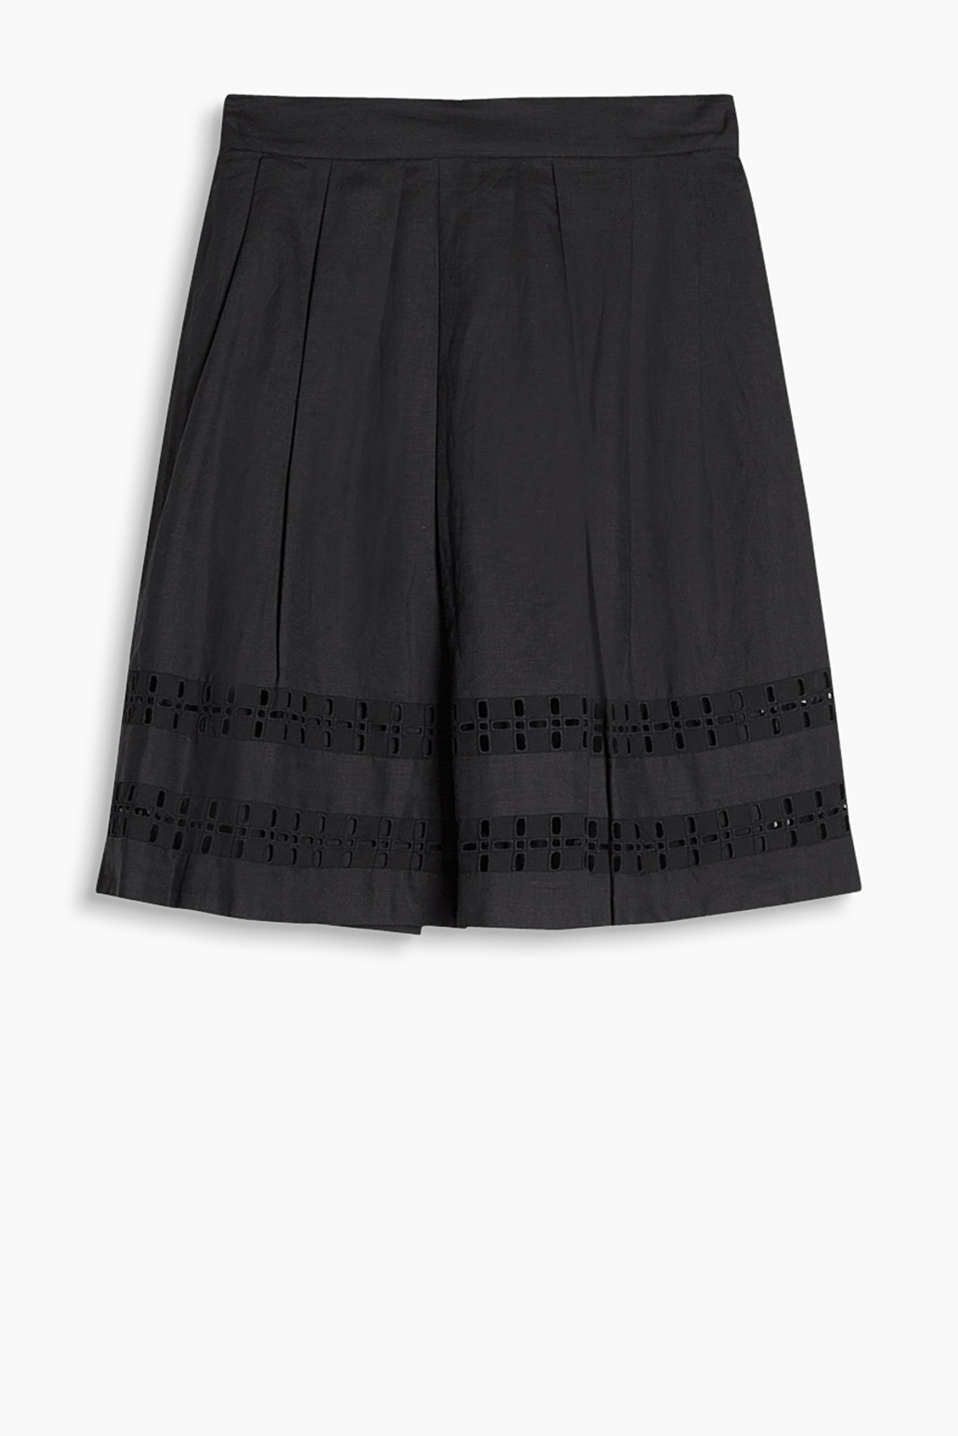 Flared, linen blend skirt with graphic hem embroidery